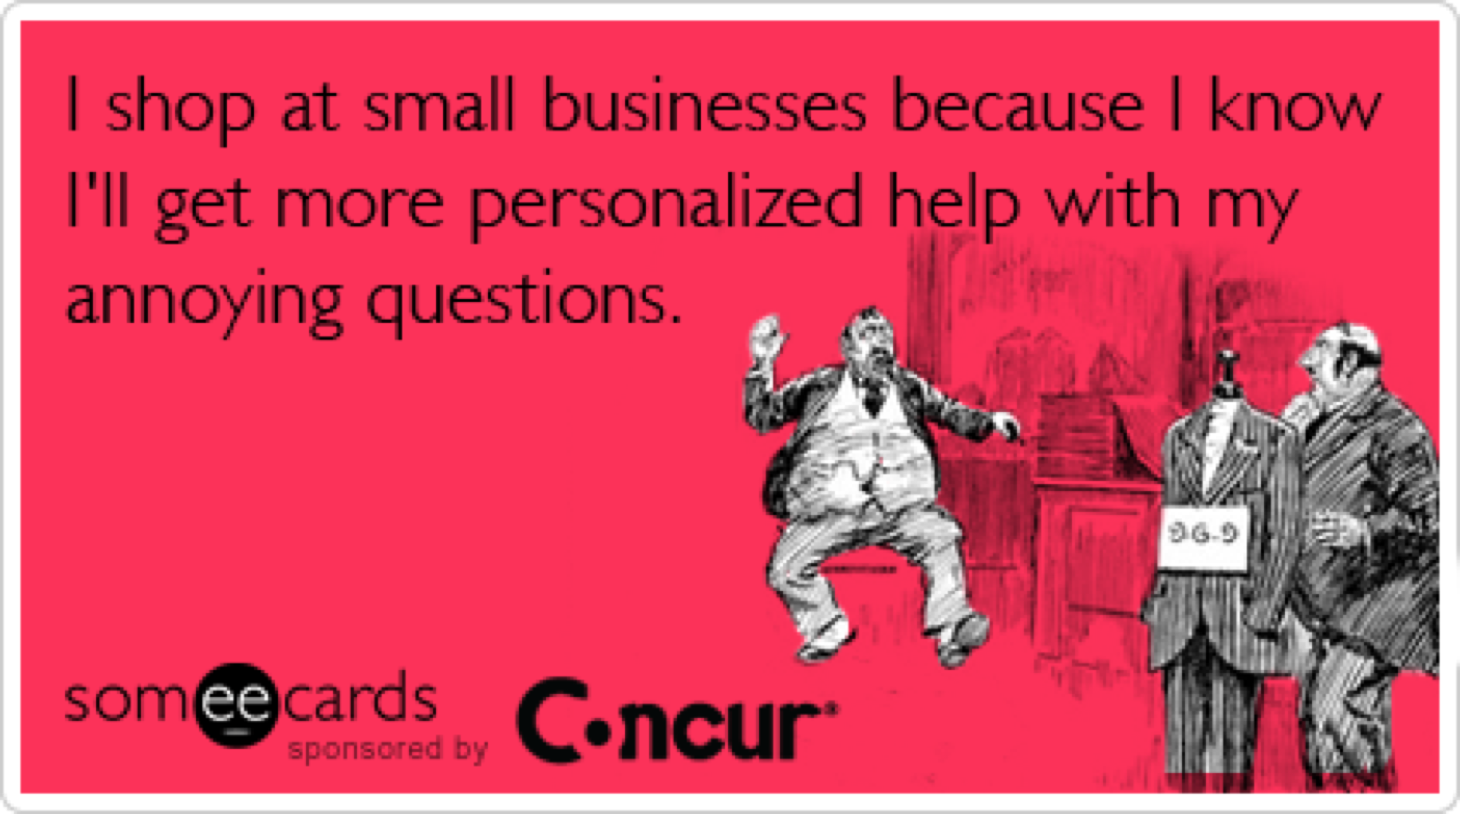 Someecards Png - wpid-shopping-shop-capitalism-concur-small-business-week-ecards ...